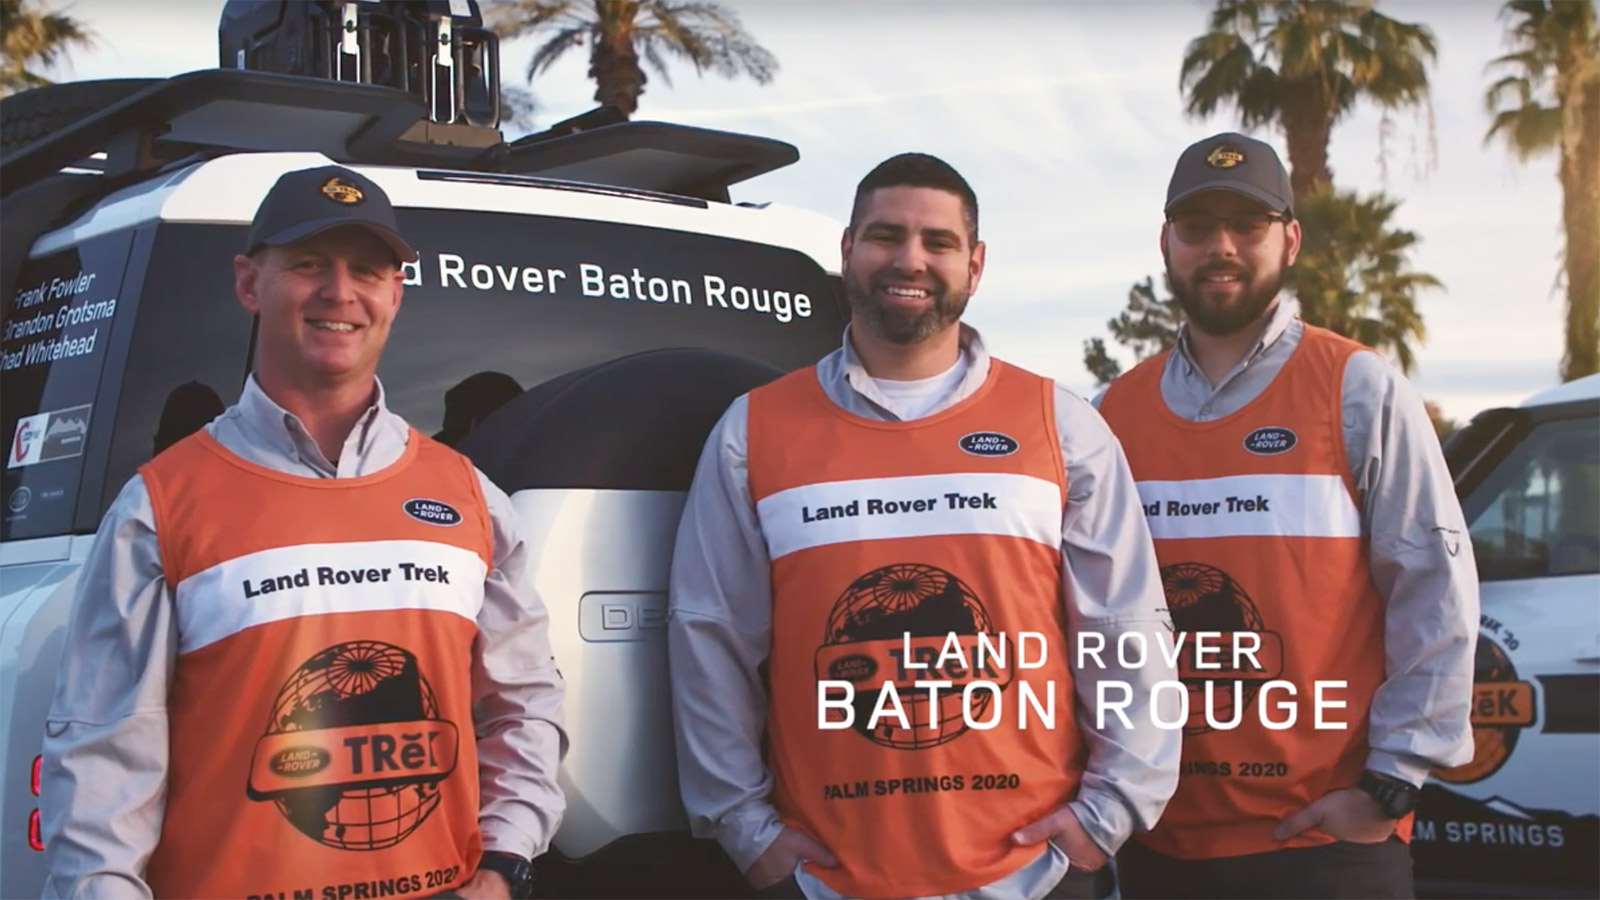 Land Rover TReK Off-Road Competition team from Baton Rouge, Louisiana.